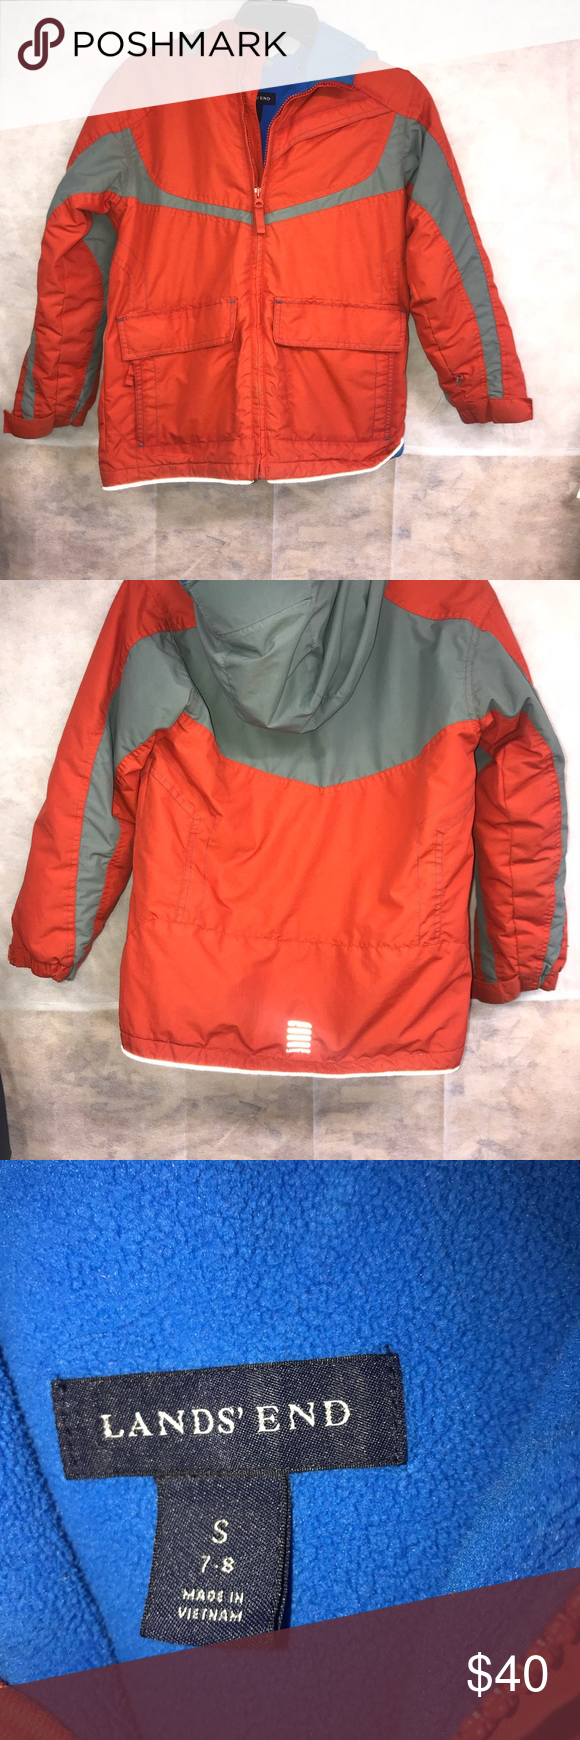 fc7d0f7c1 Land ends boys coat orange n blue Land ends boys coat orange n blue small 7/8  Lands' End Jackets & Coats Puffers